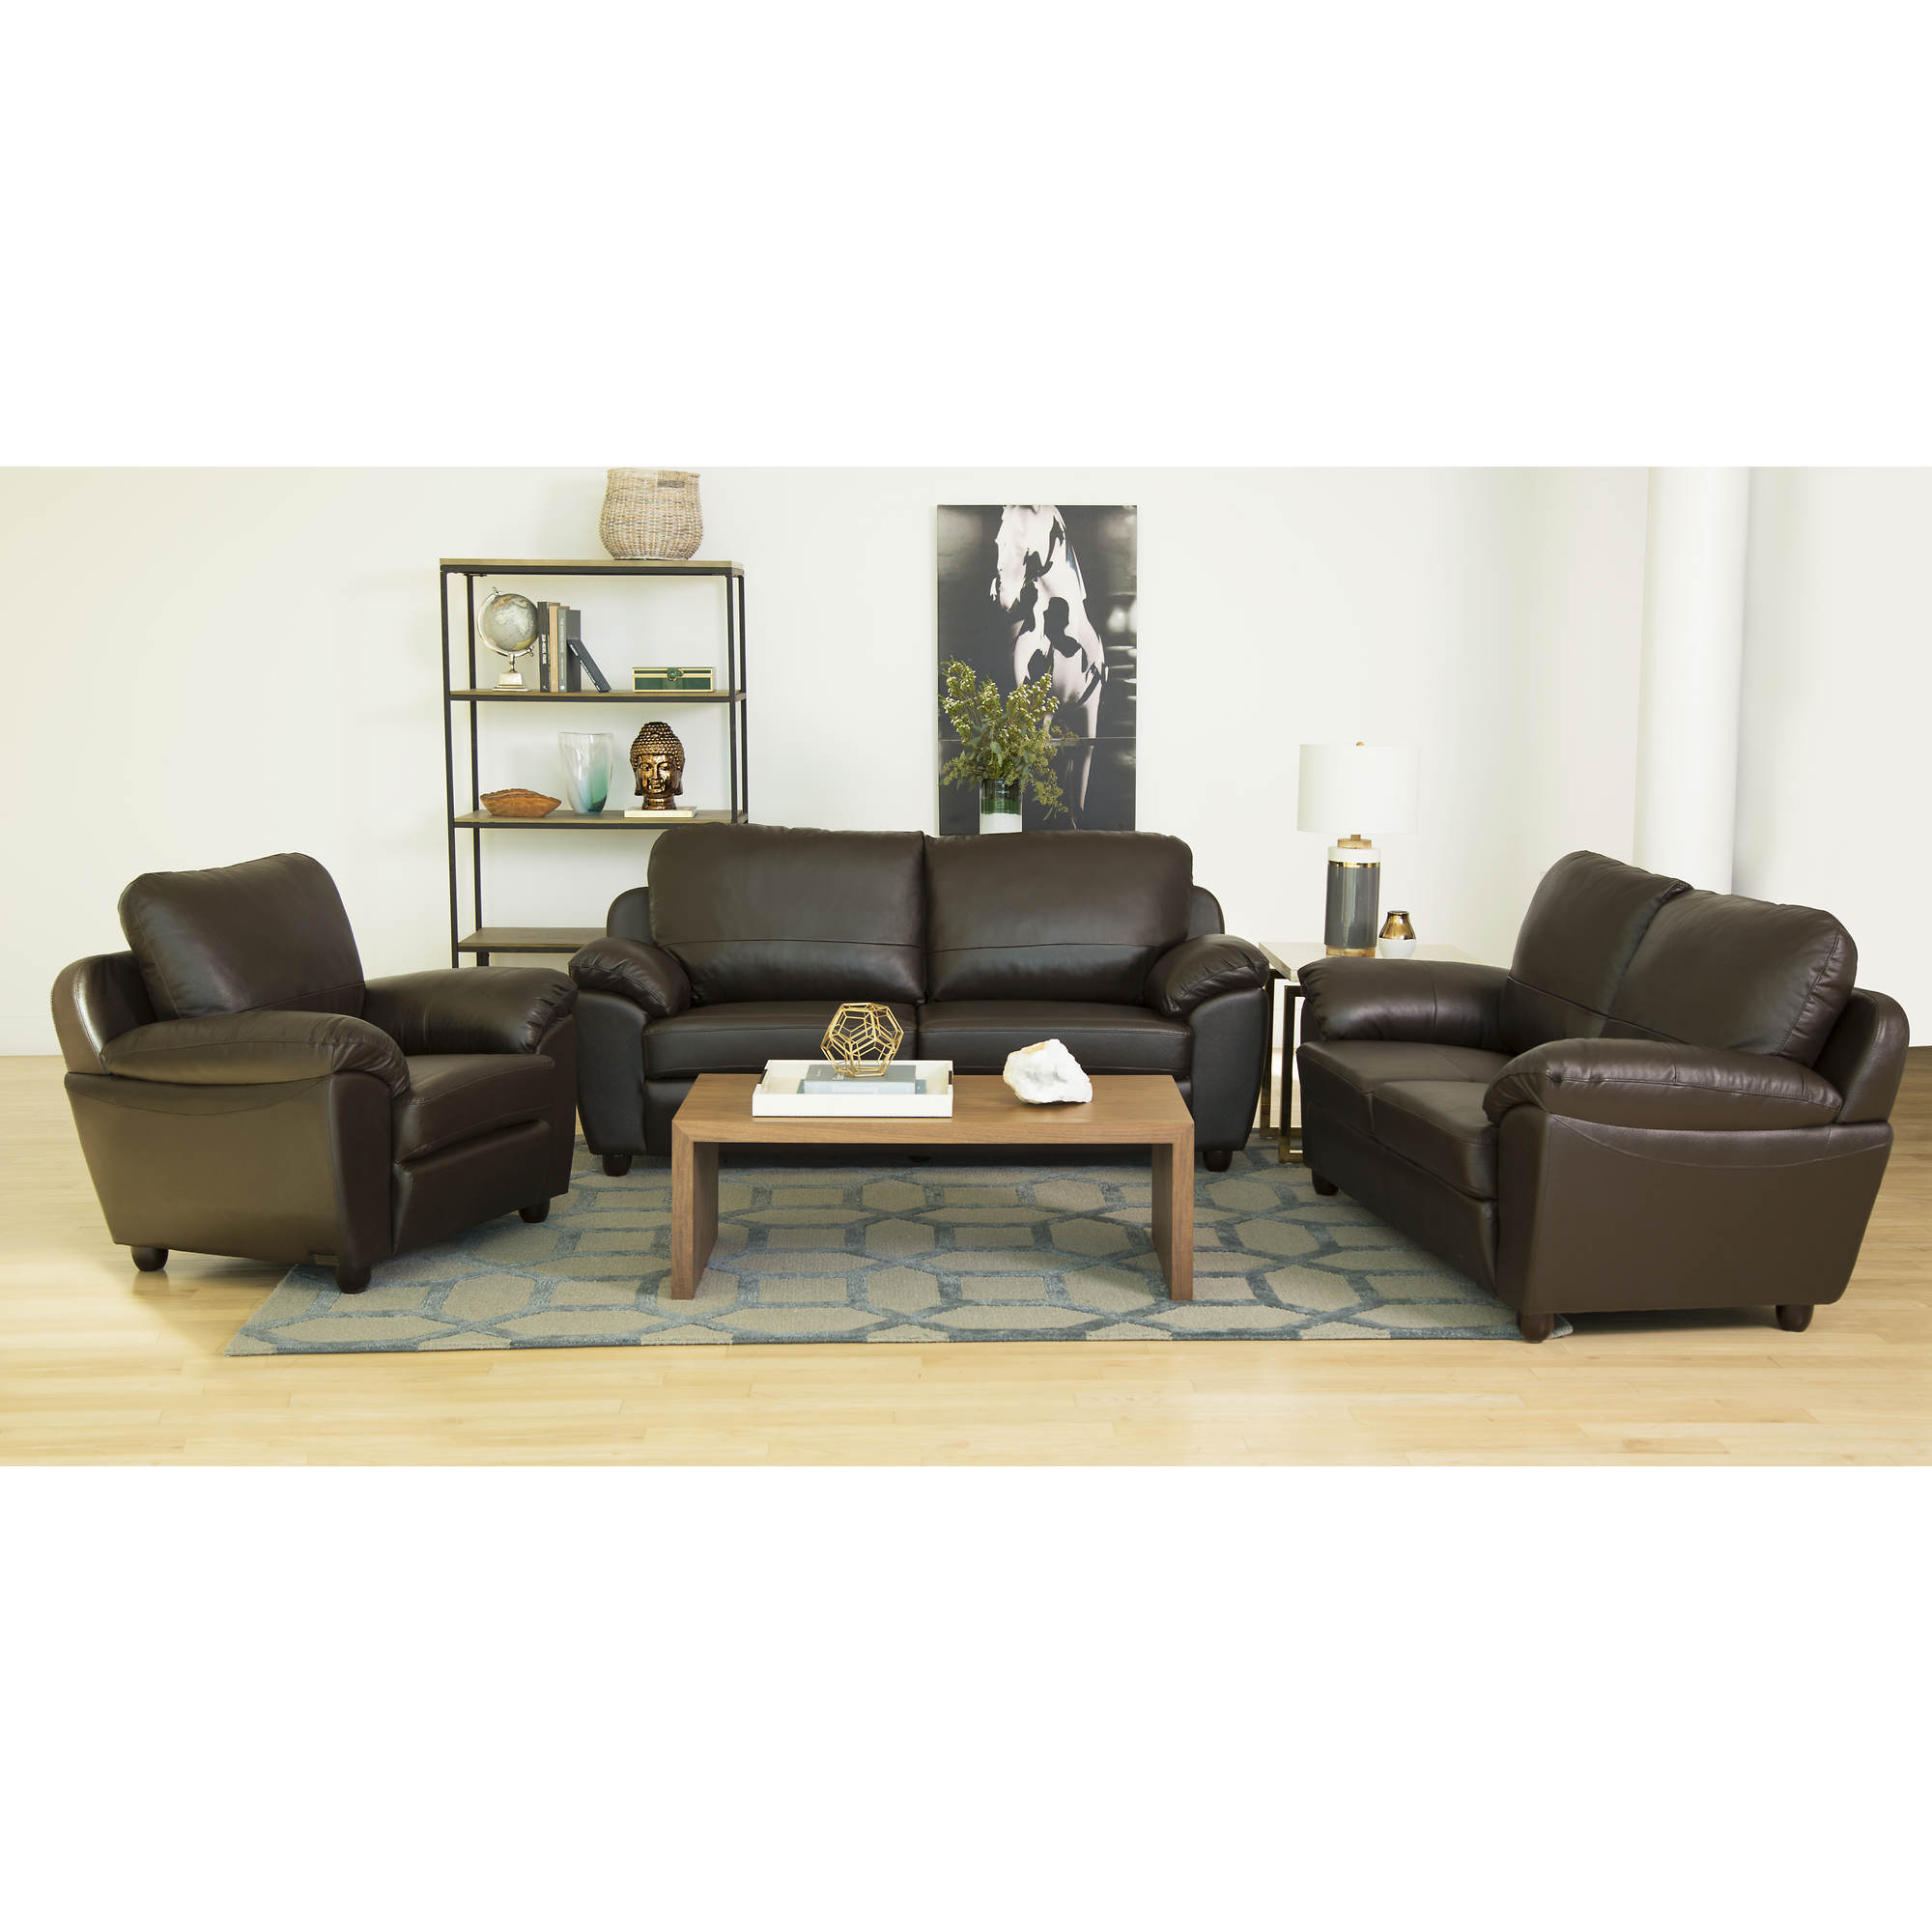 copper piping italian leather living room set Lighting View